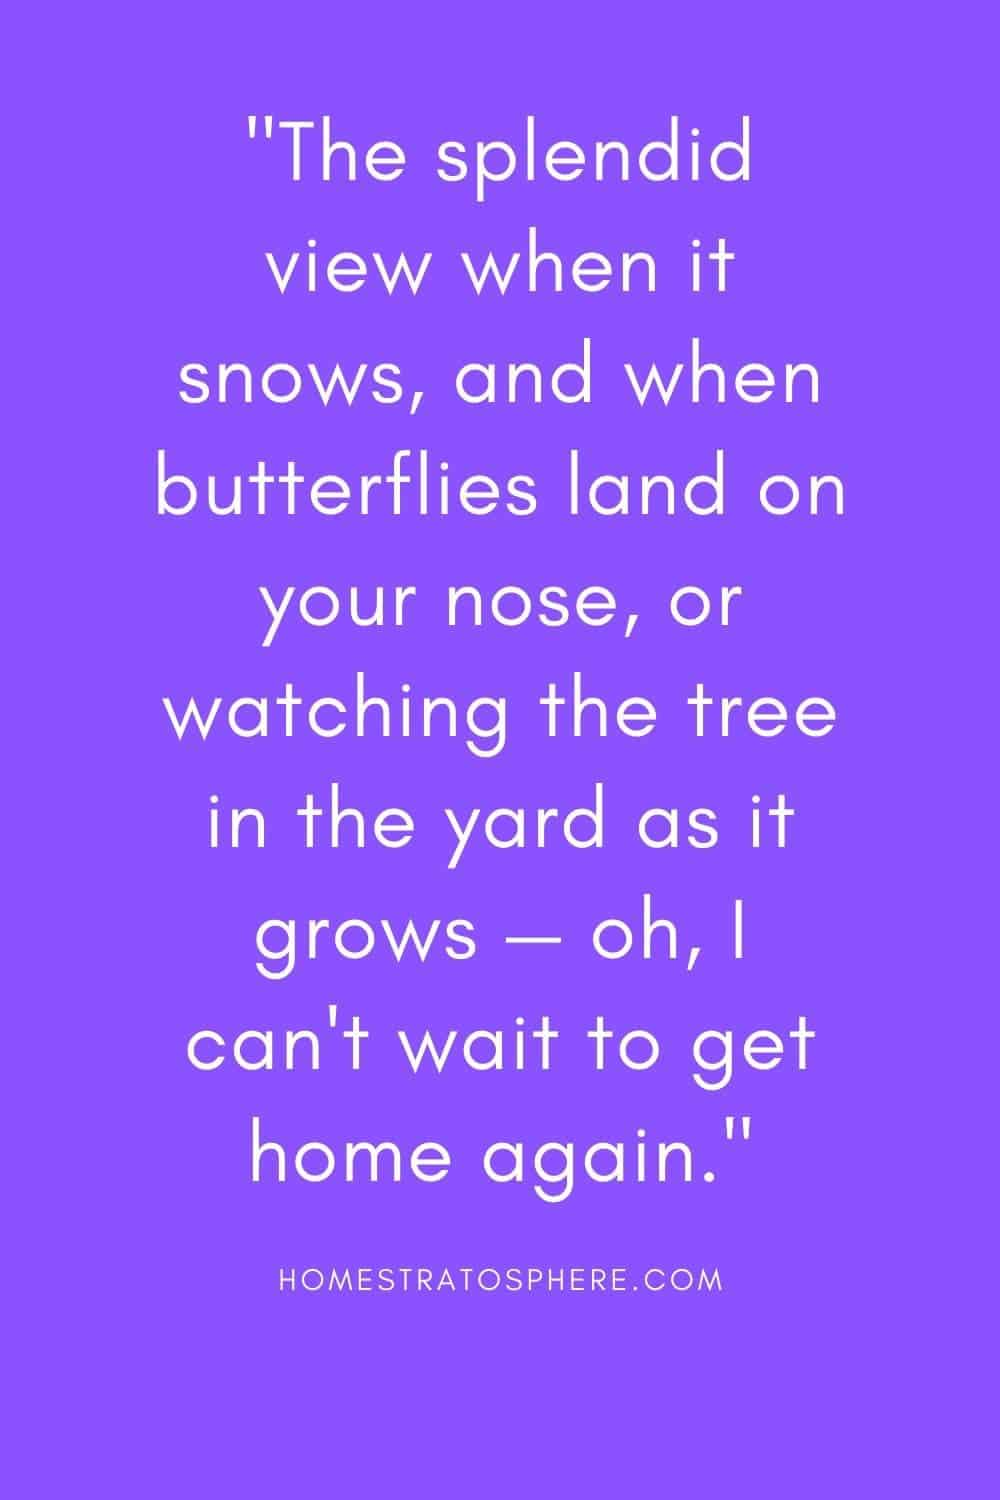 """""""The splendid view when it snows, and when butterflies land on your nose, or watching the tree in the yard as it grows — oh, I can't wait to get home again."""""""